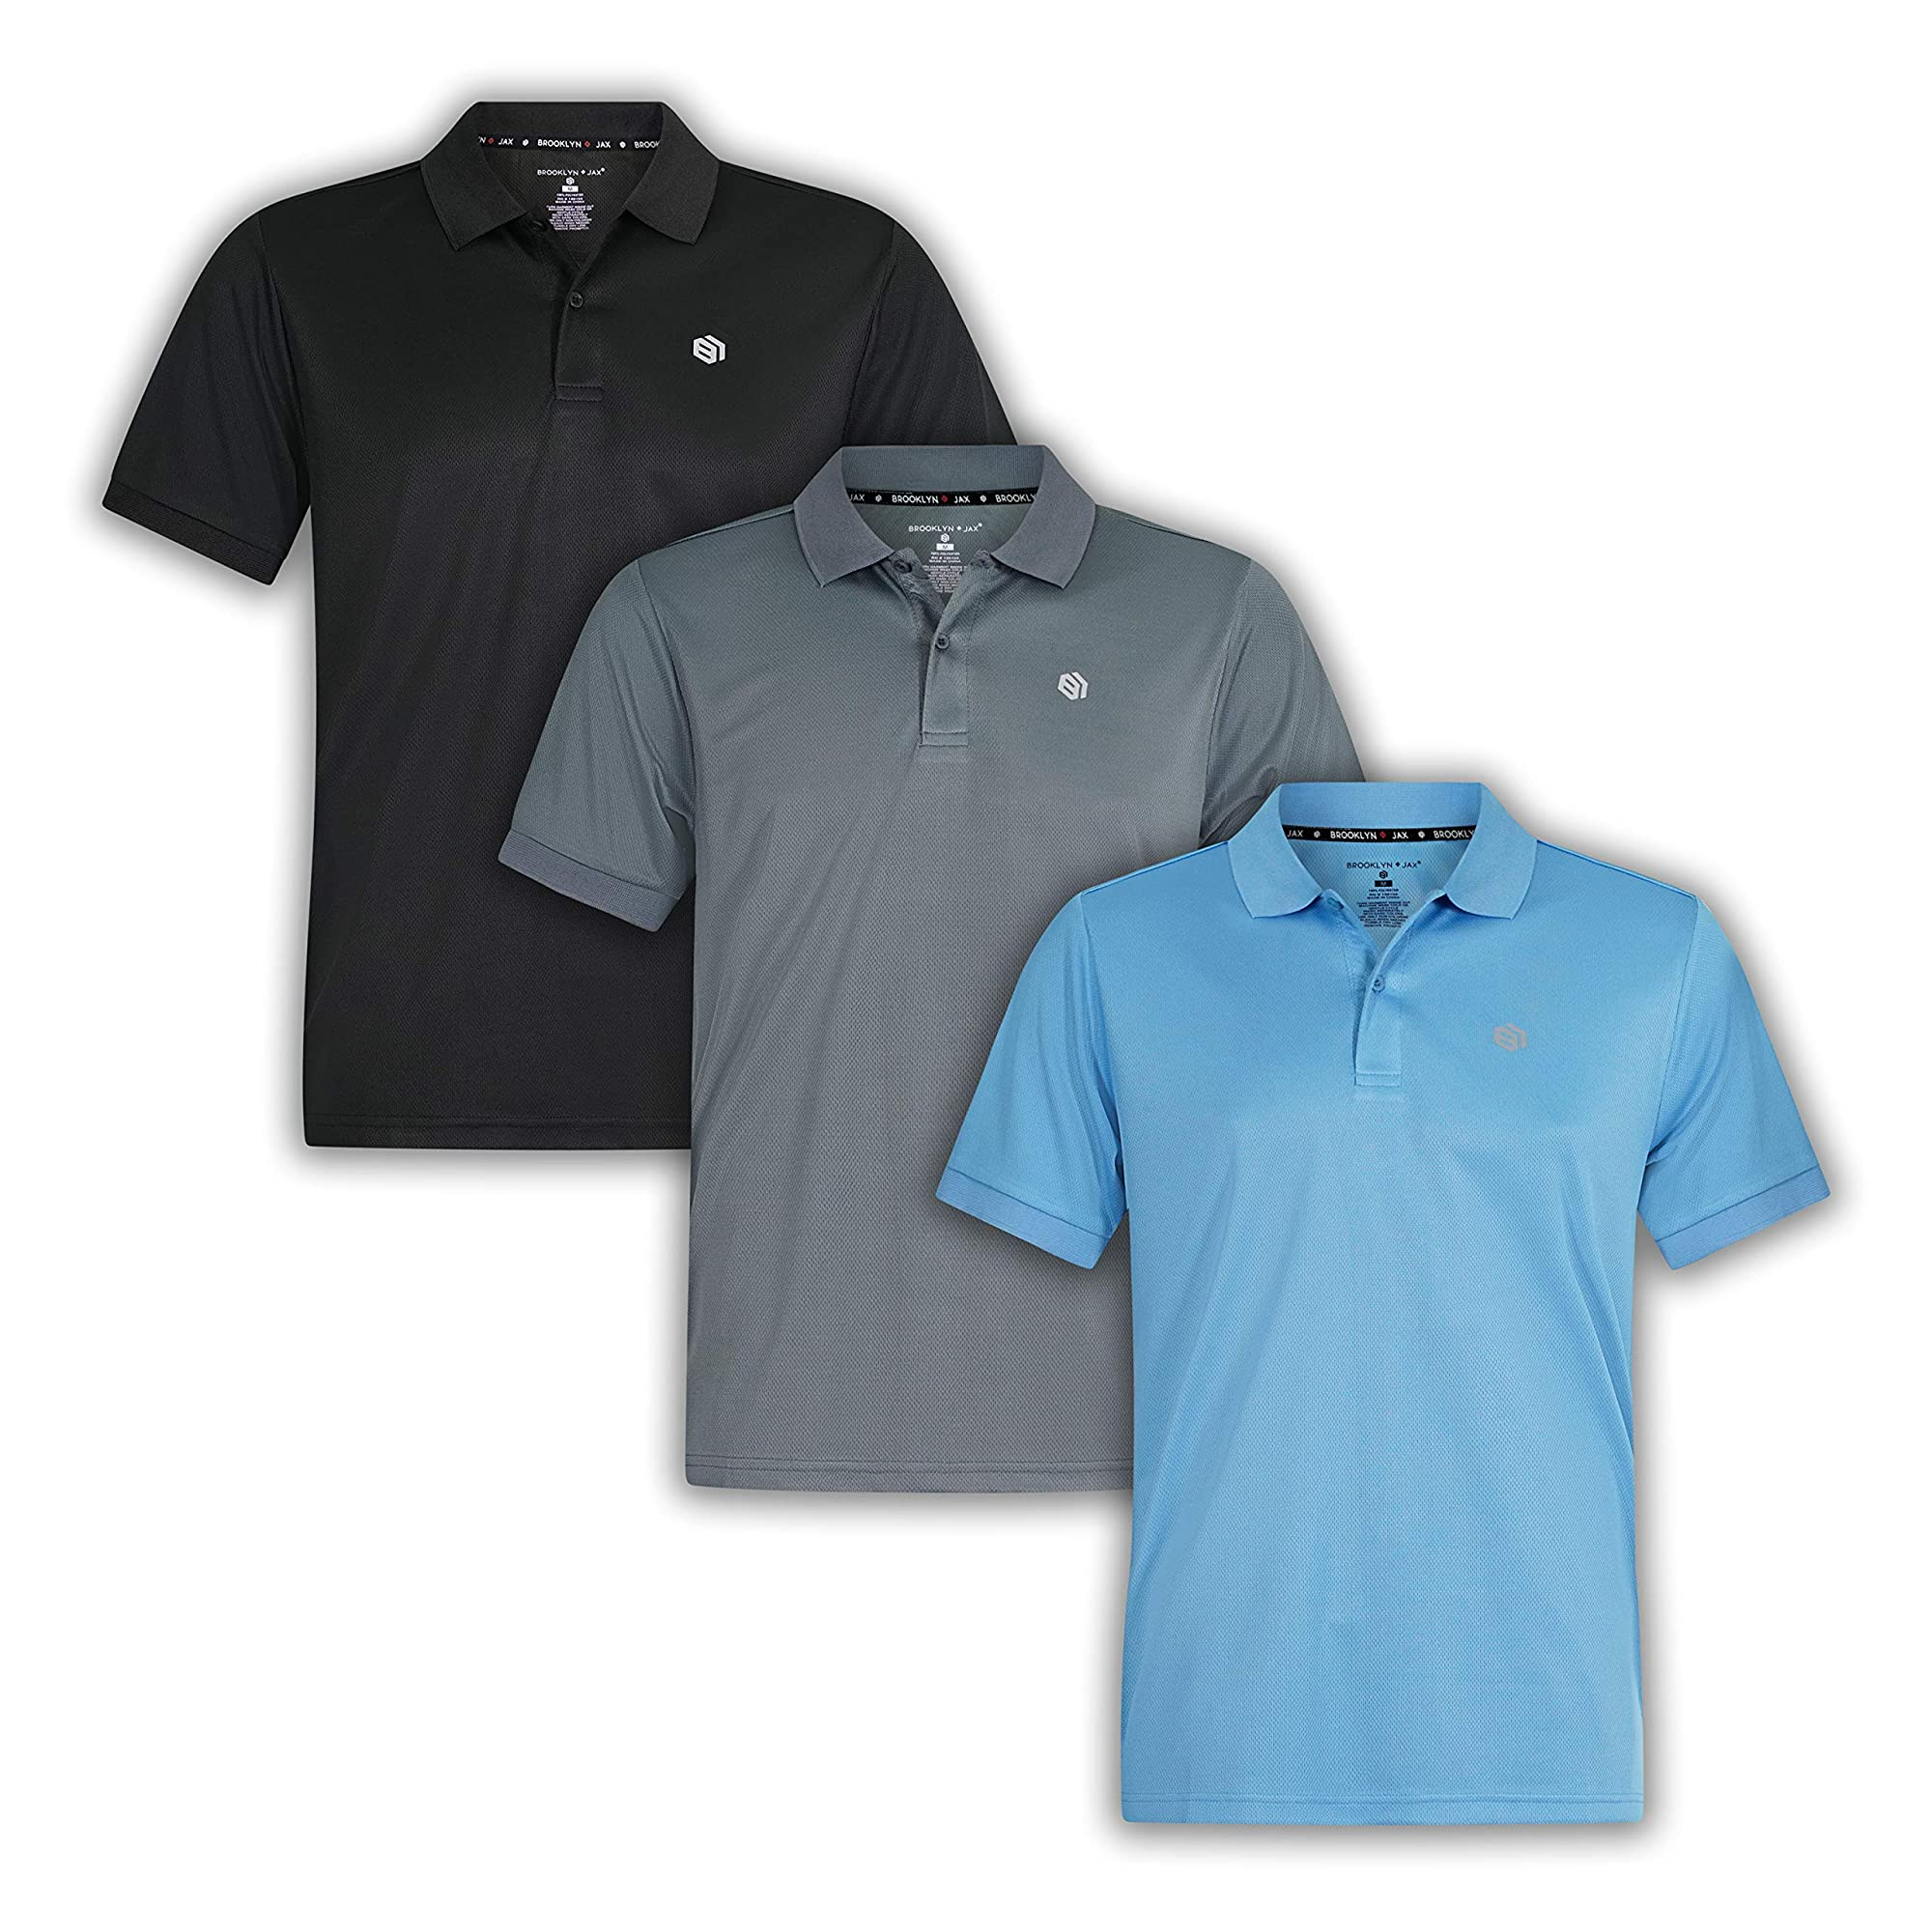 Short-Sleeve Polo T-Shirts For Men (Pack Of 3)